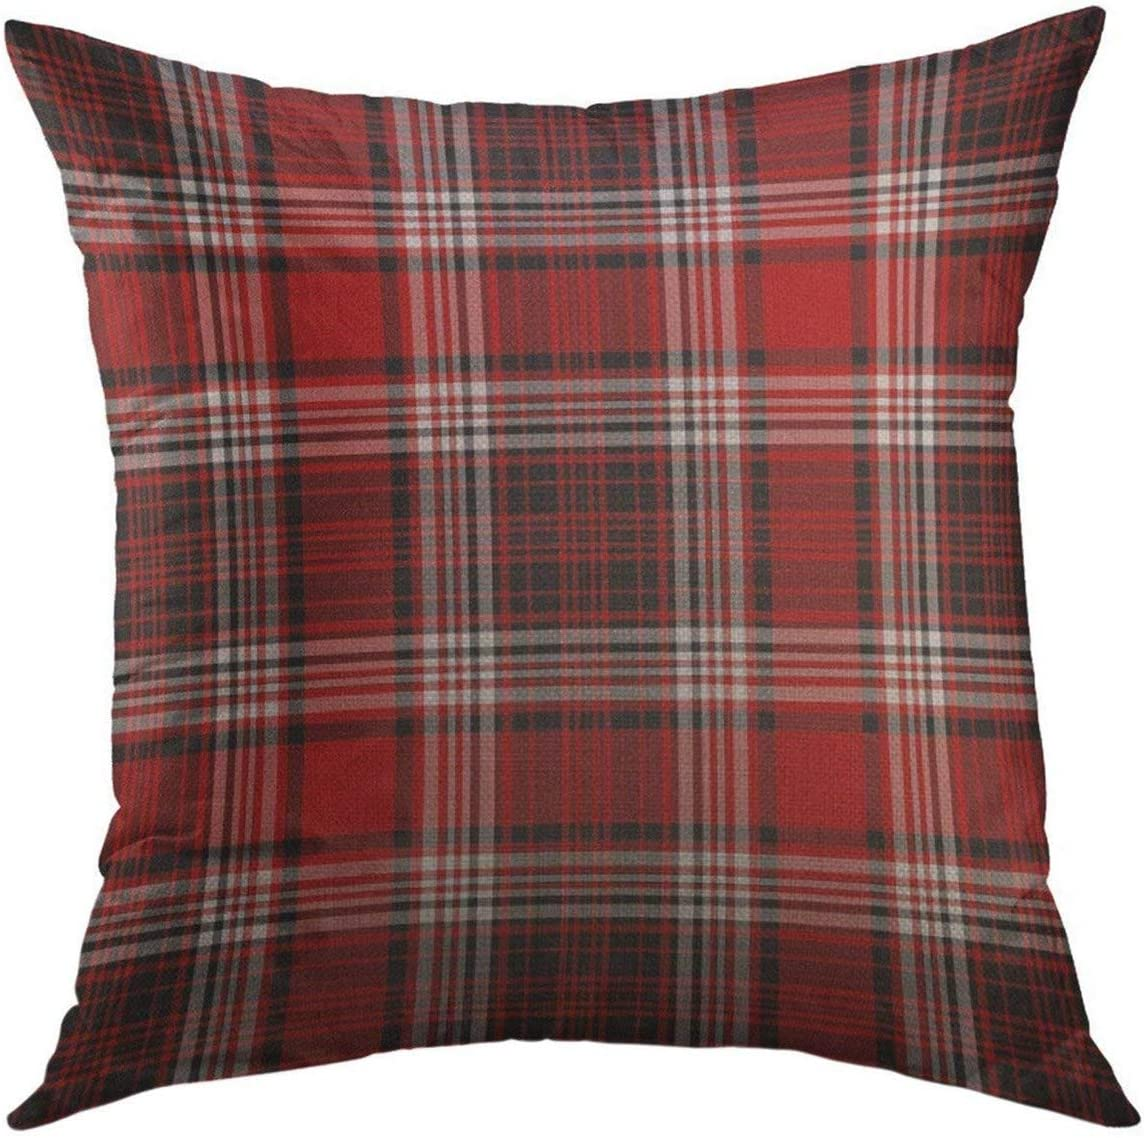 Mugod Decorative Throw Pillow Cover for Couch Sofa,Flannel Red White Black Plaid Christmas Masculine Home Decor Pillow case 18x18 Inch